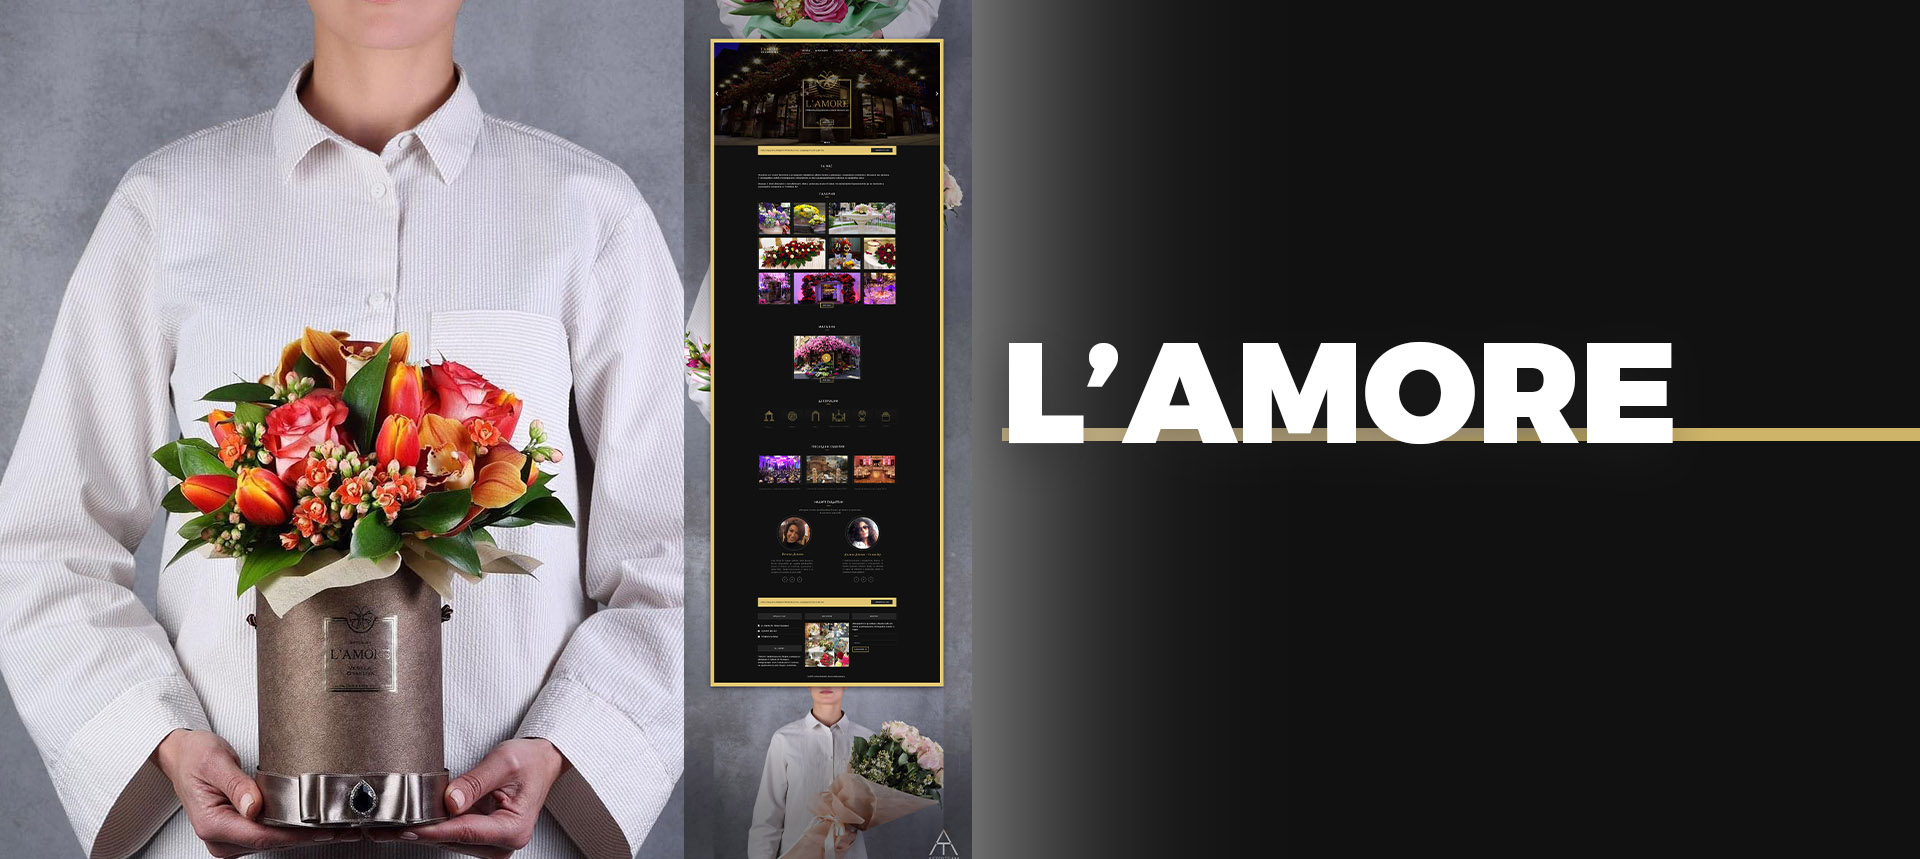 afterteam projects wordpress 02 lamore 2019 banner